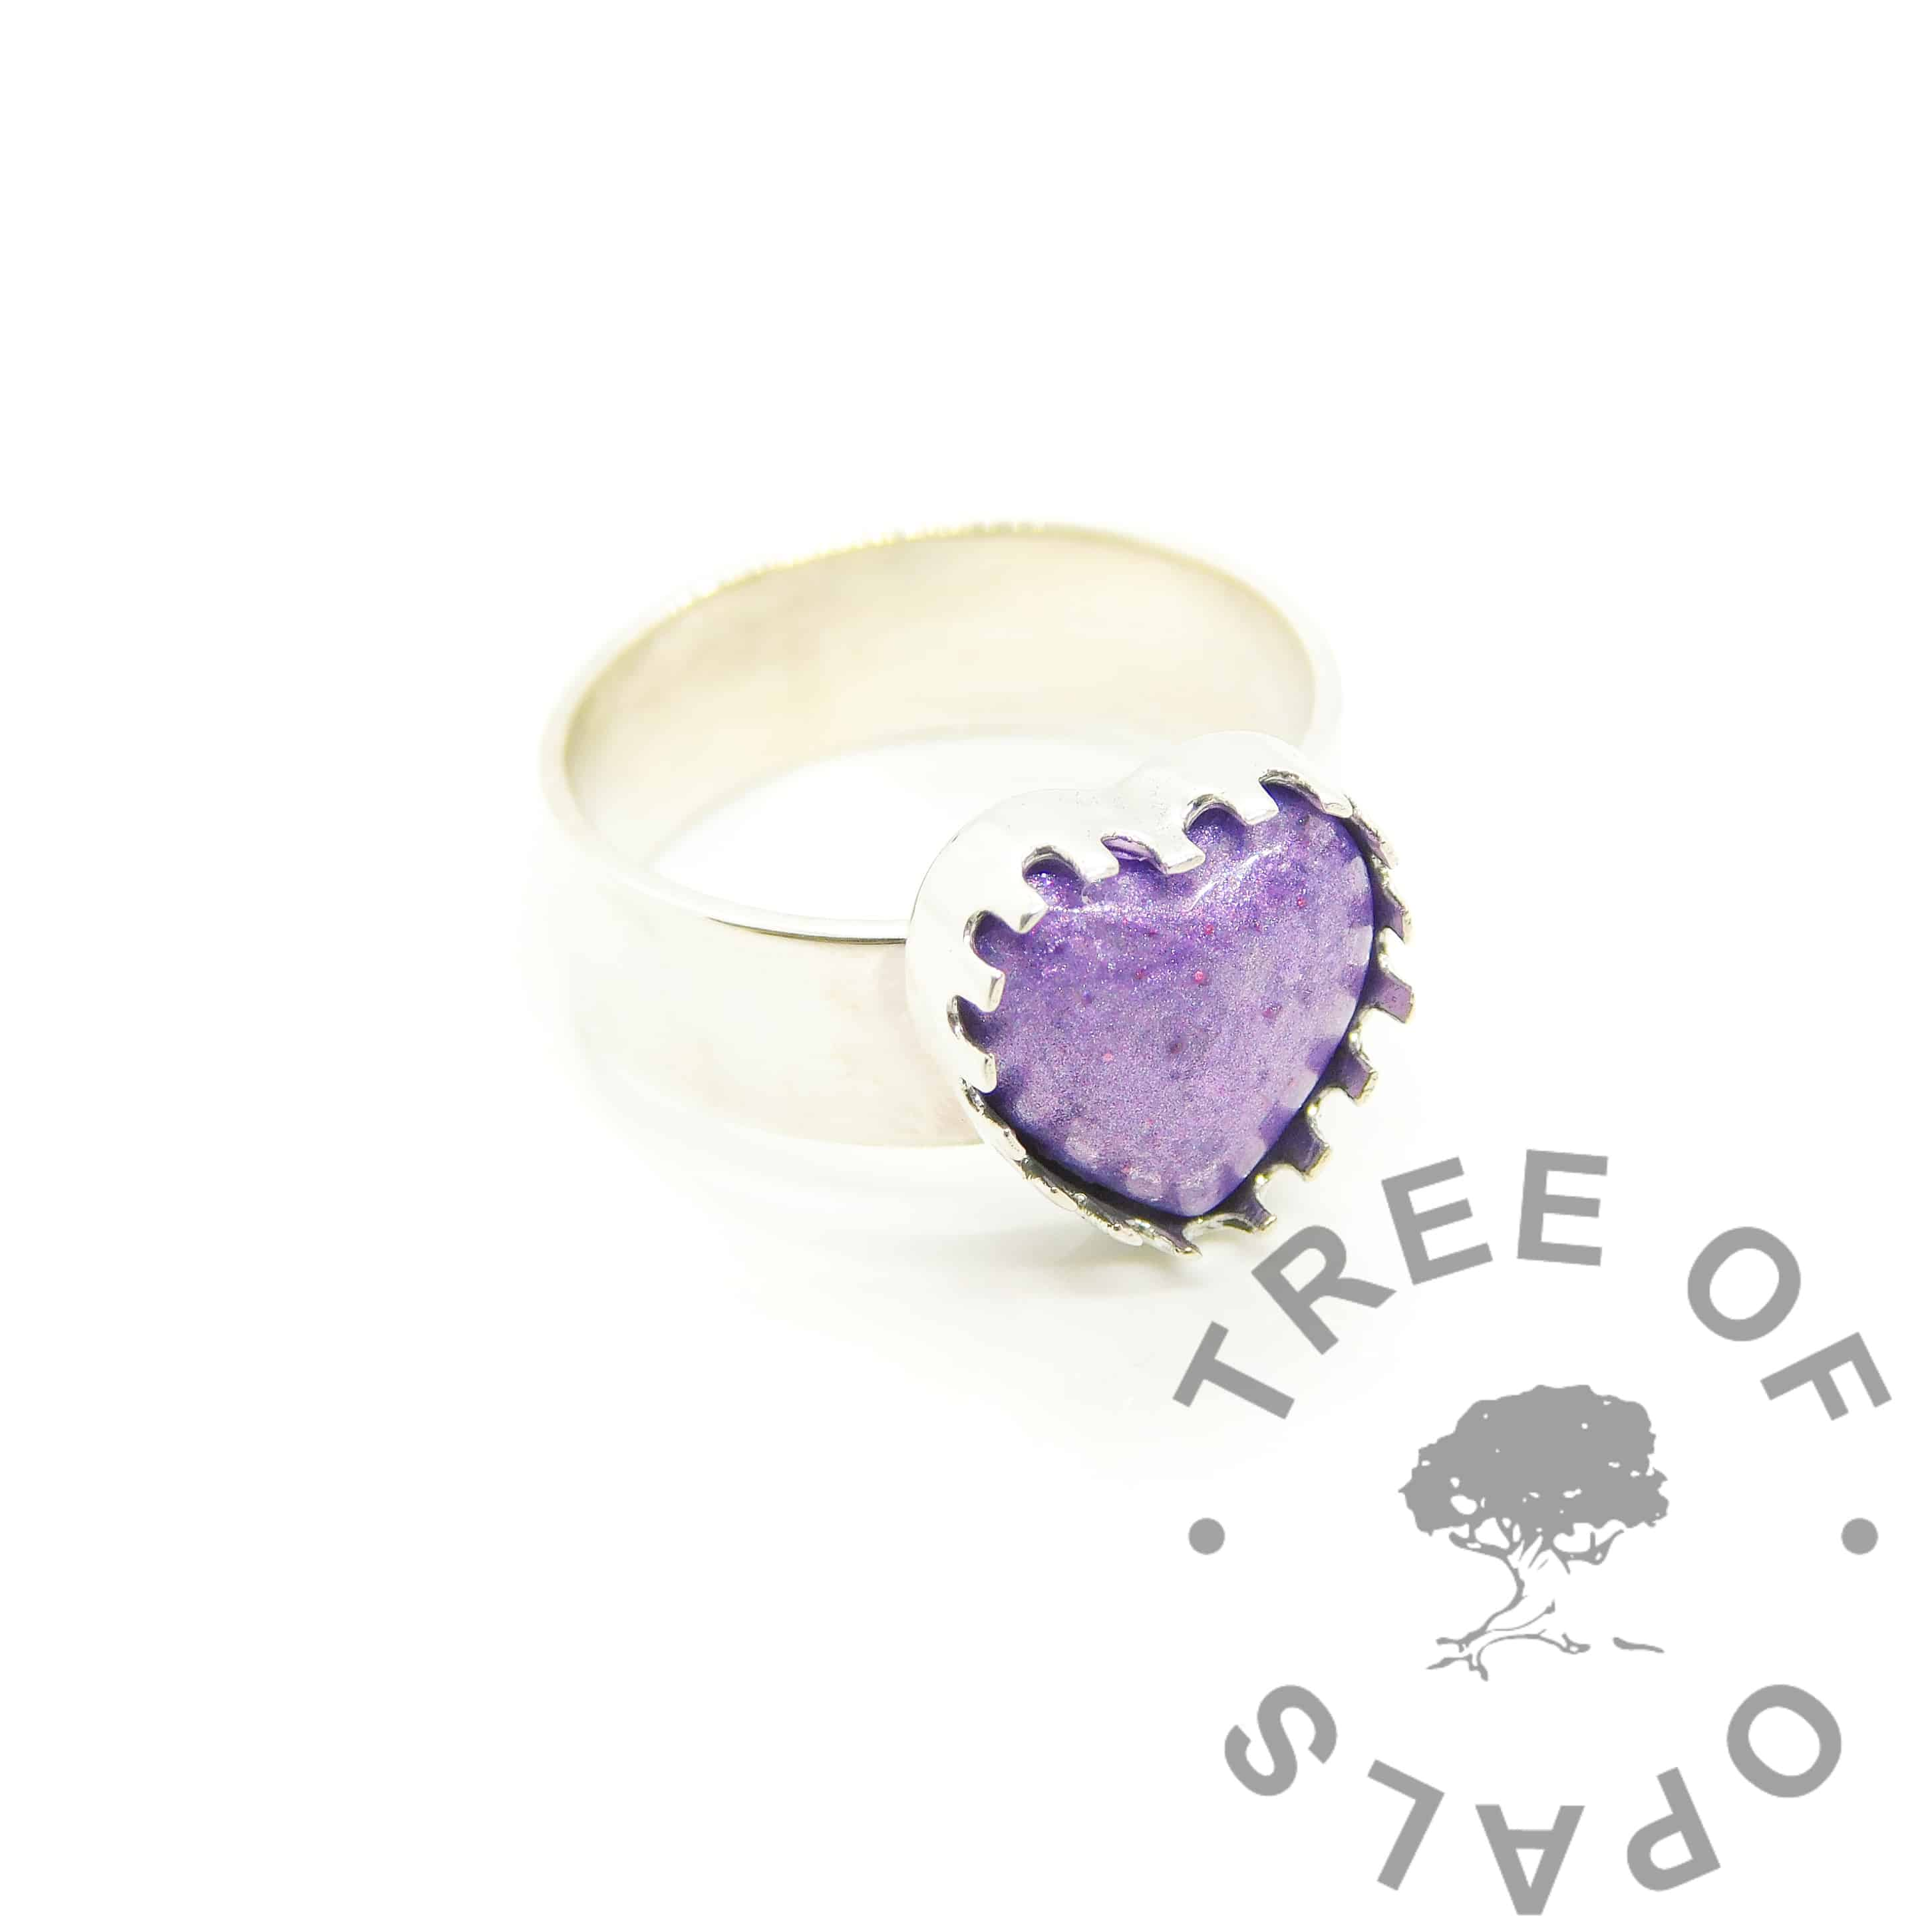 cremation ashes heart ring 10mm cast heart setting open backed in solid silver, with loop and jump ring, shown with orchid purple ashes cabochon